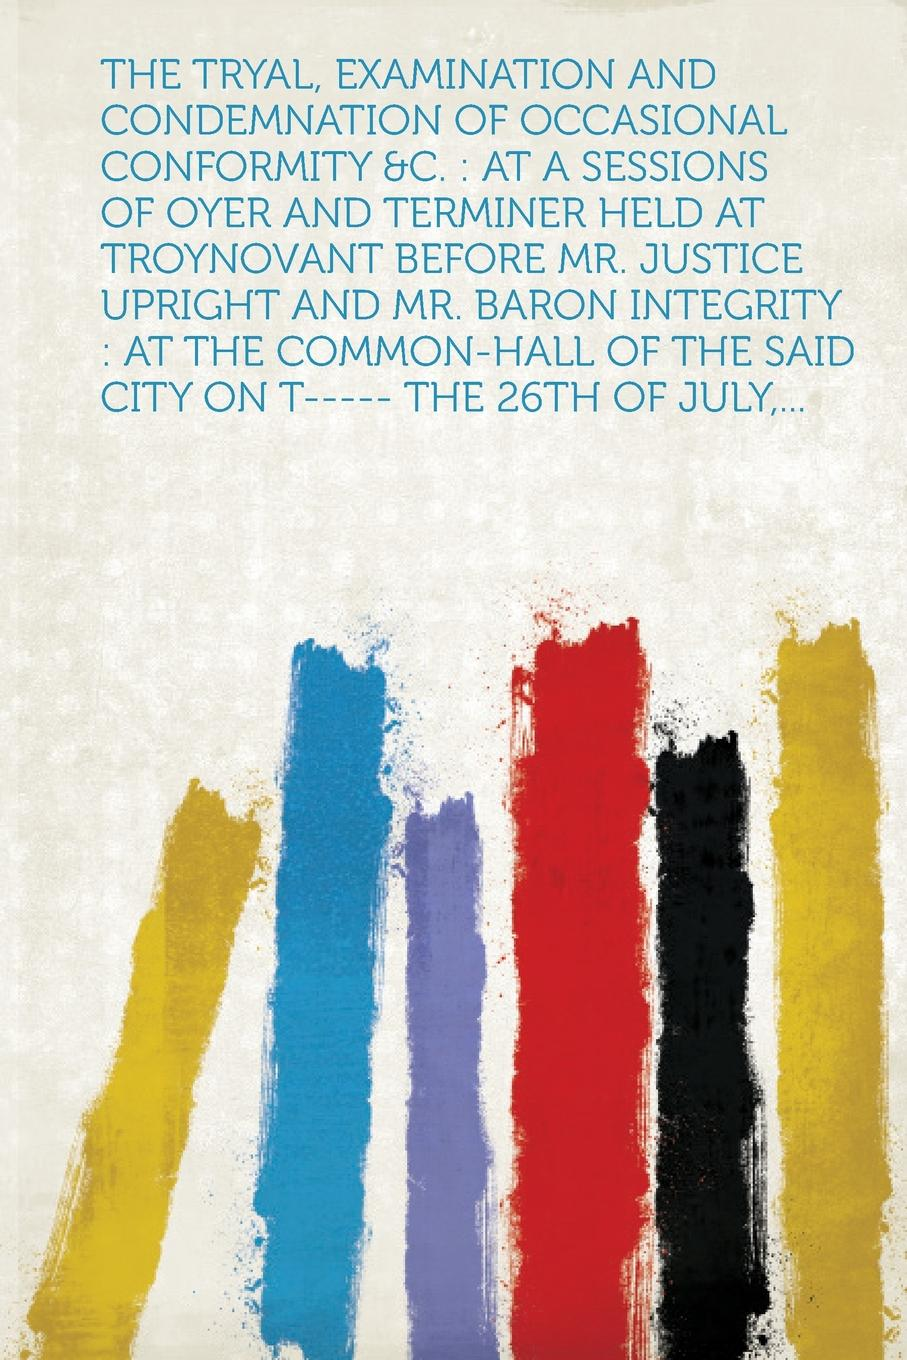 The Tryal, Examination and Condemnation of Occasional Conformity .C. At a Sessions of Oyer and Terminer Held at Troynovant Before Mr. Justice Upright